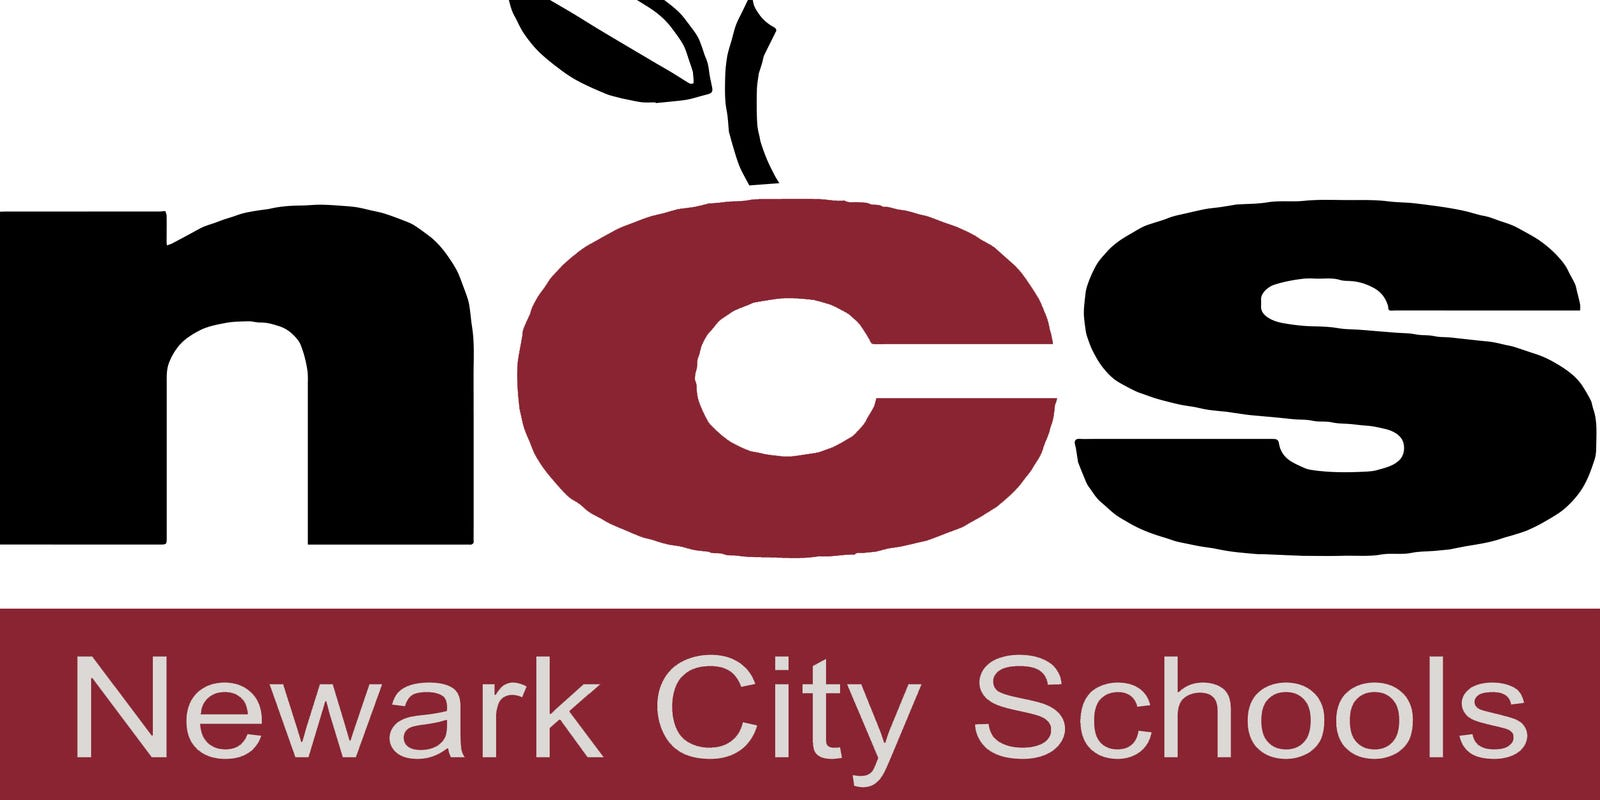 When Does Newark City Schools Resume After Christmas 2020 Newark City Schools returning to in person learning